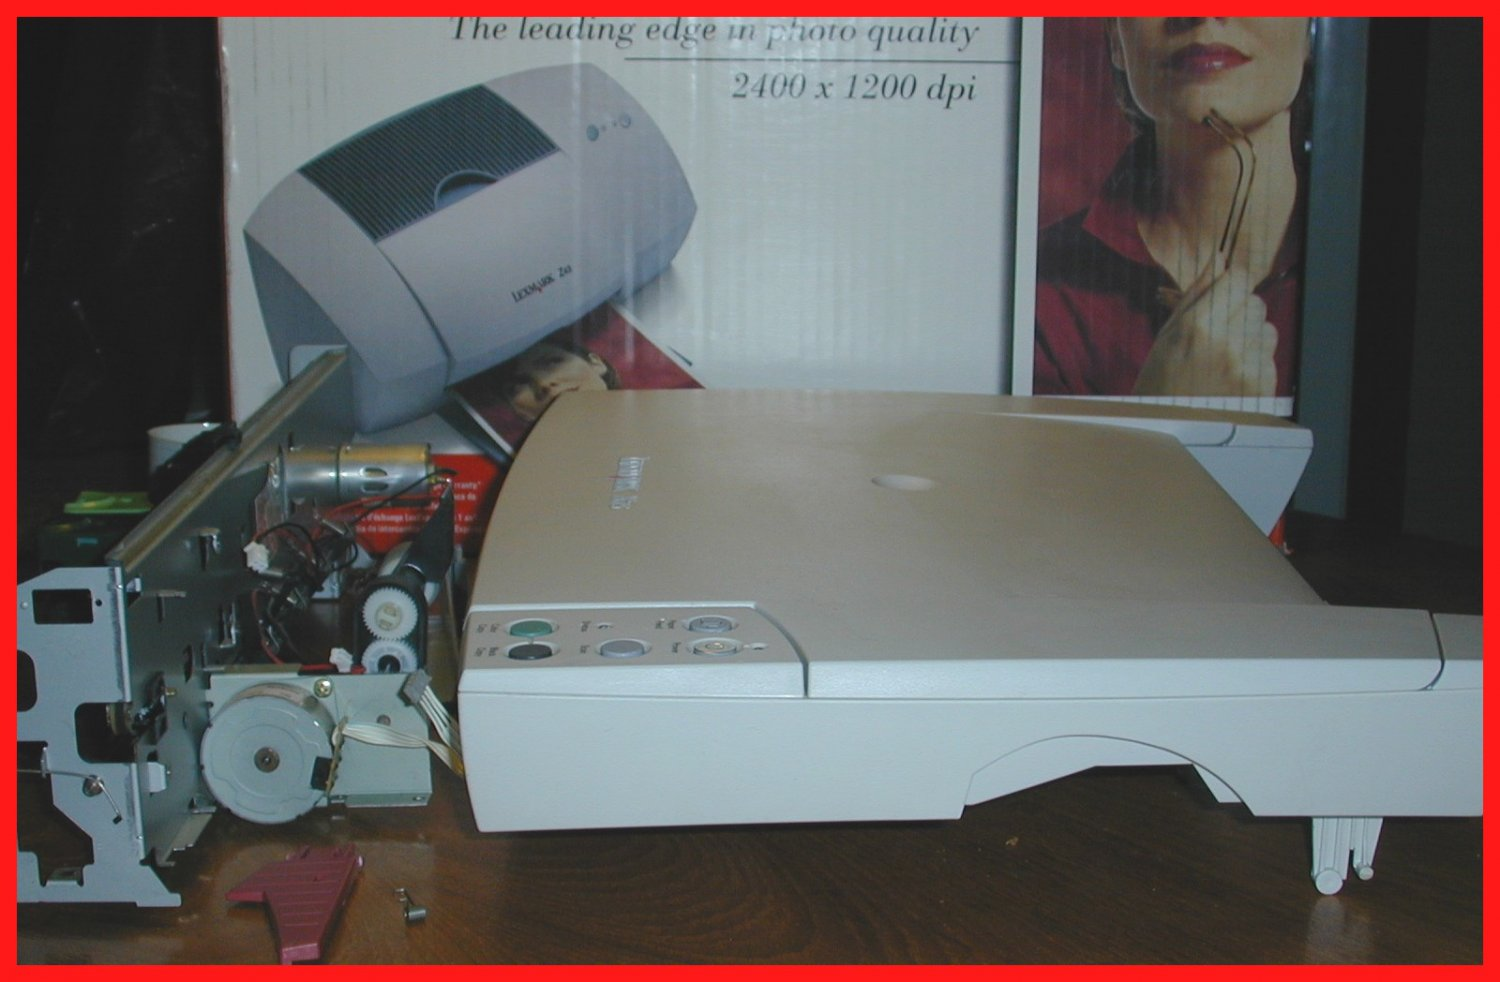 LEXMARK X75 ALL-IN-ONE Printer Inkjet TRAY & PARTS ONLY